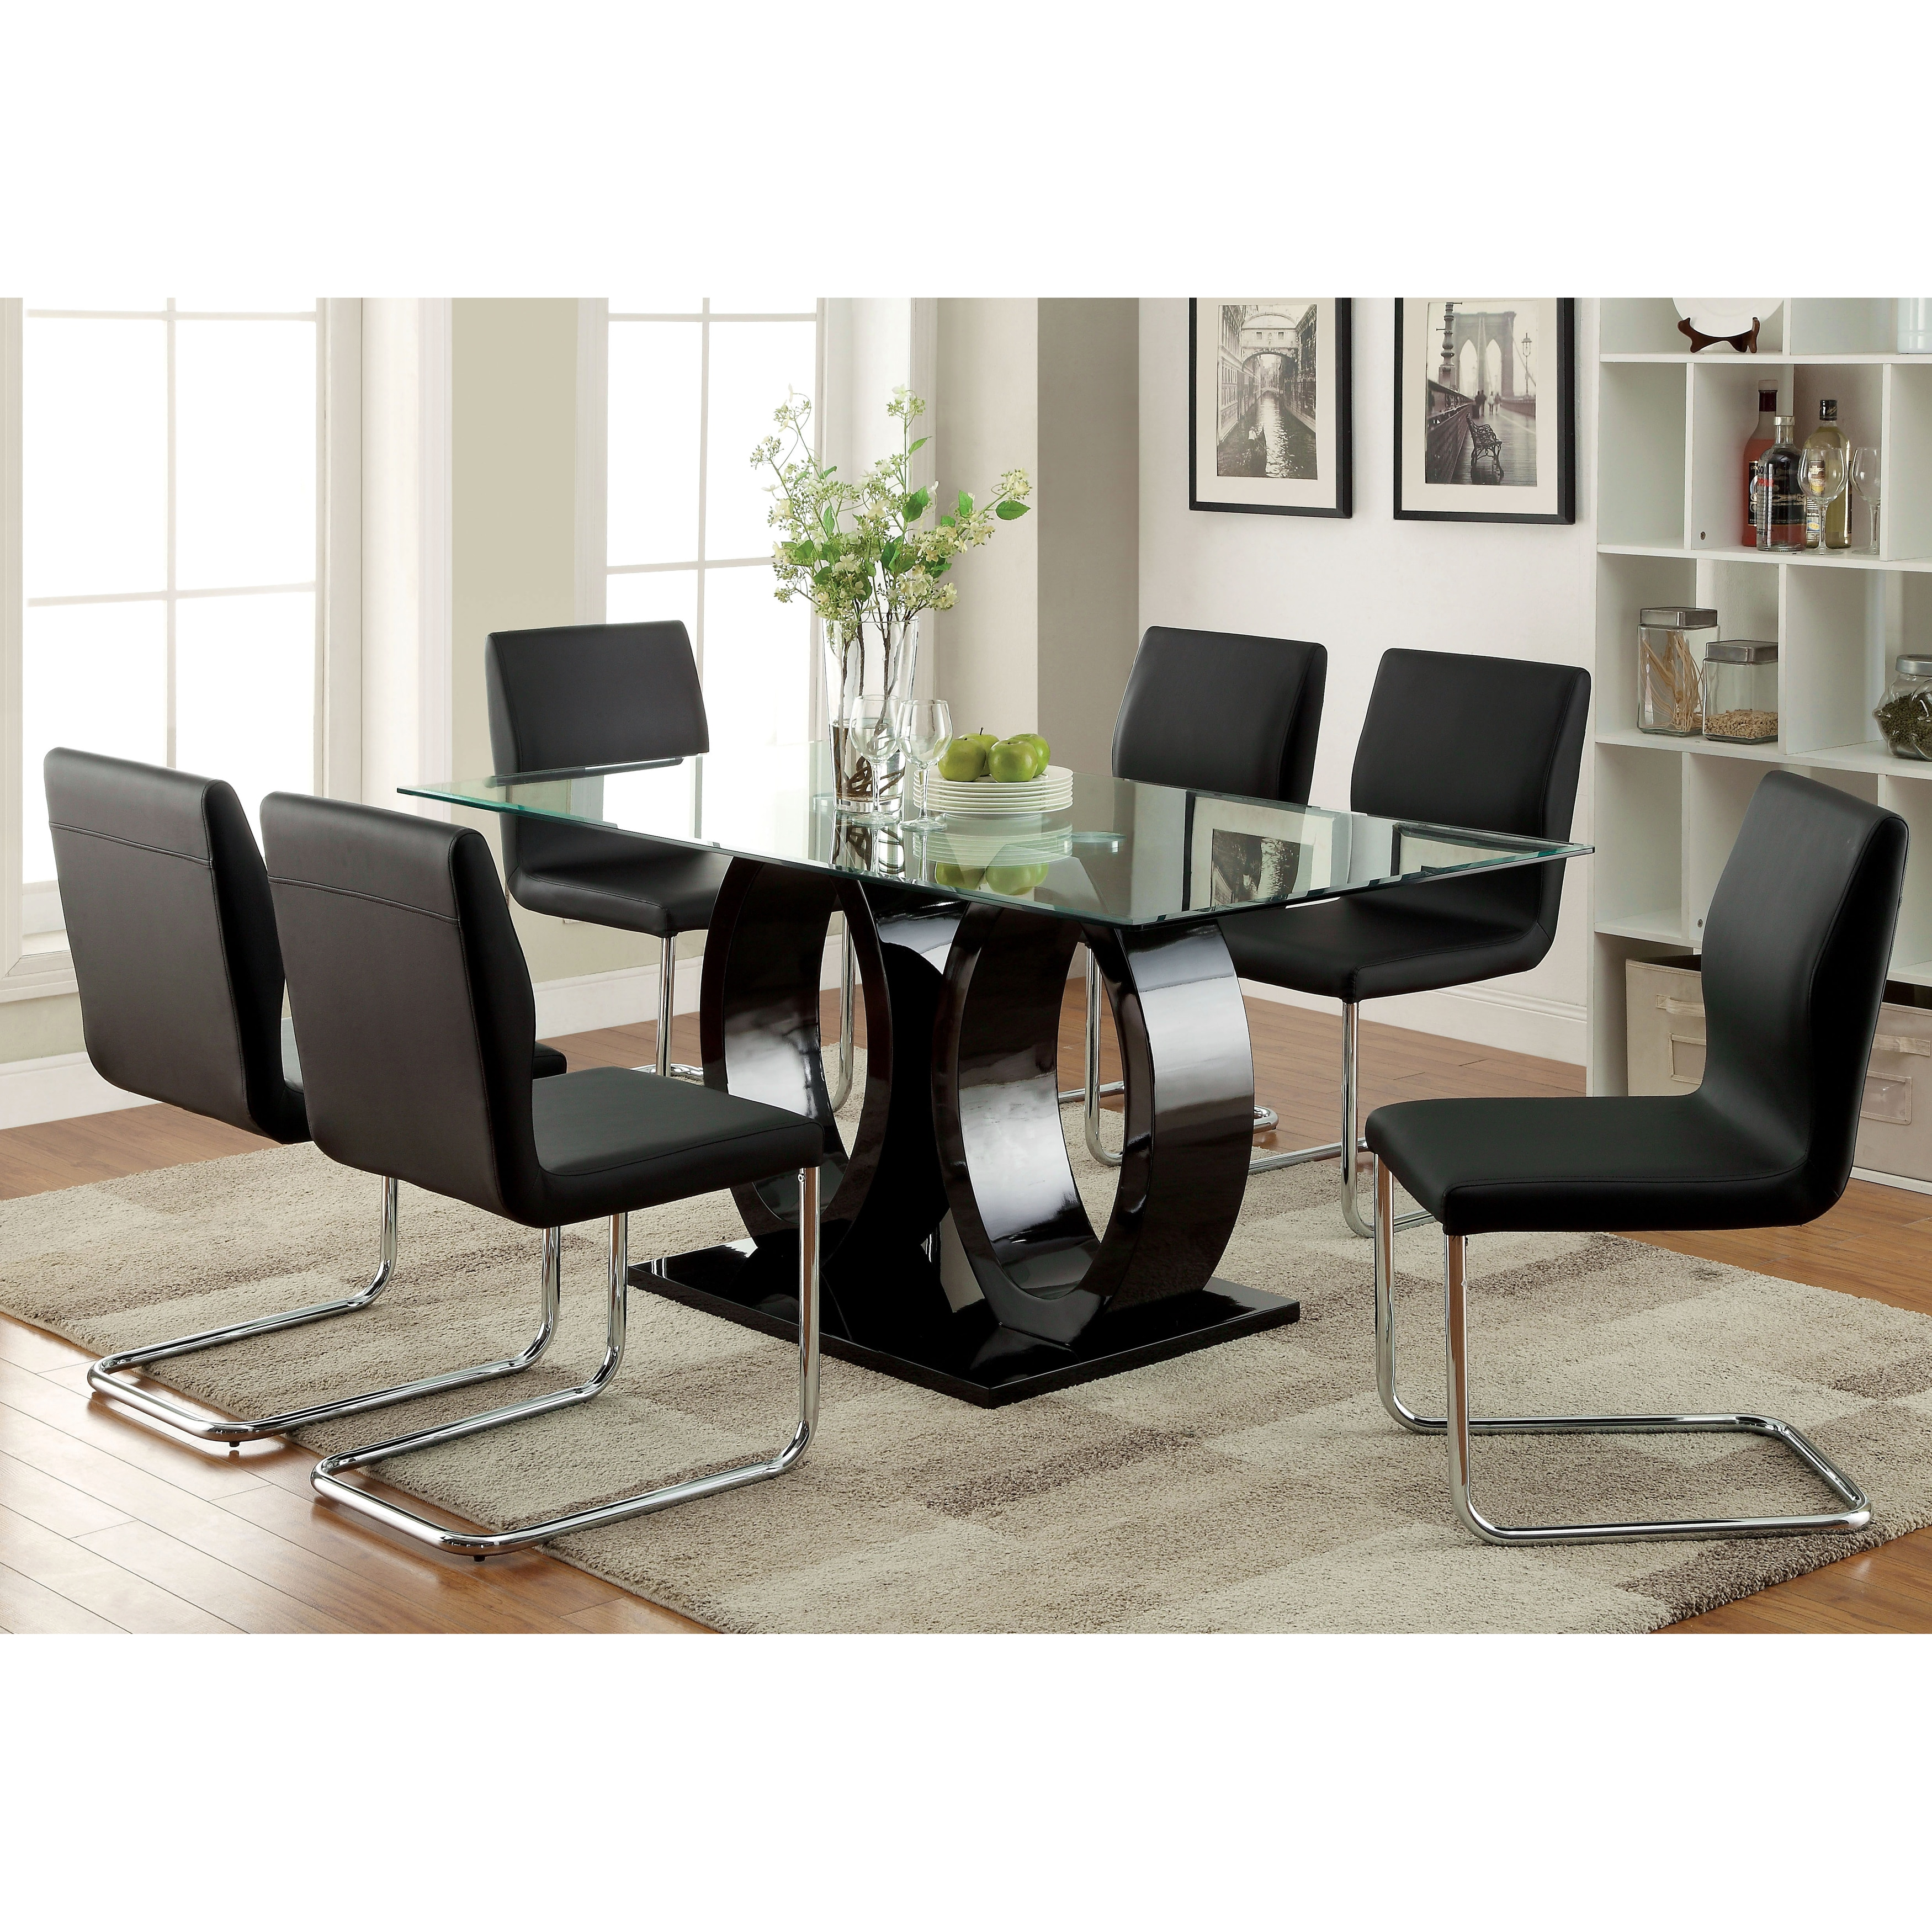 Advertisement. Furniture of America Olgette Contemporary 7 piece High Gloss